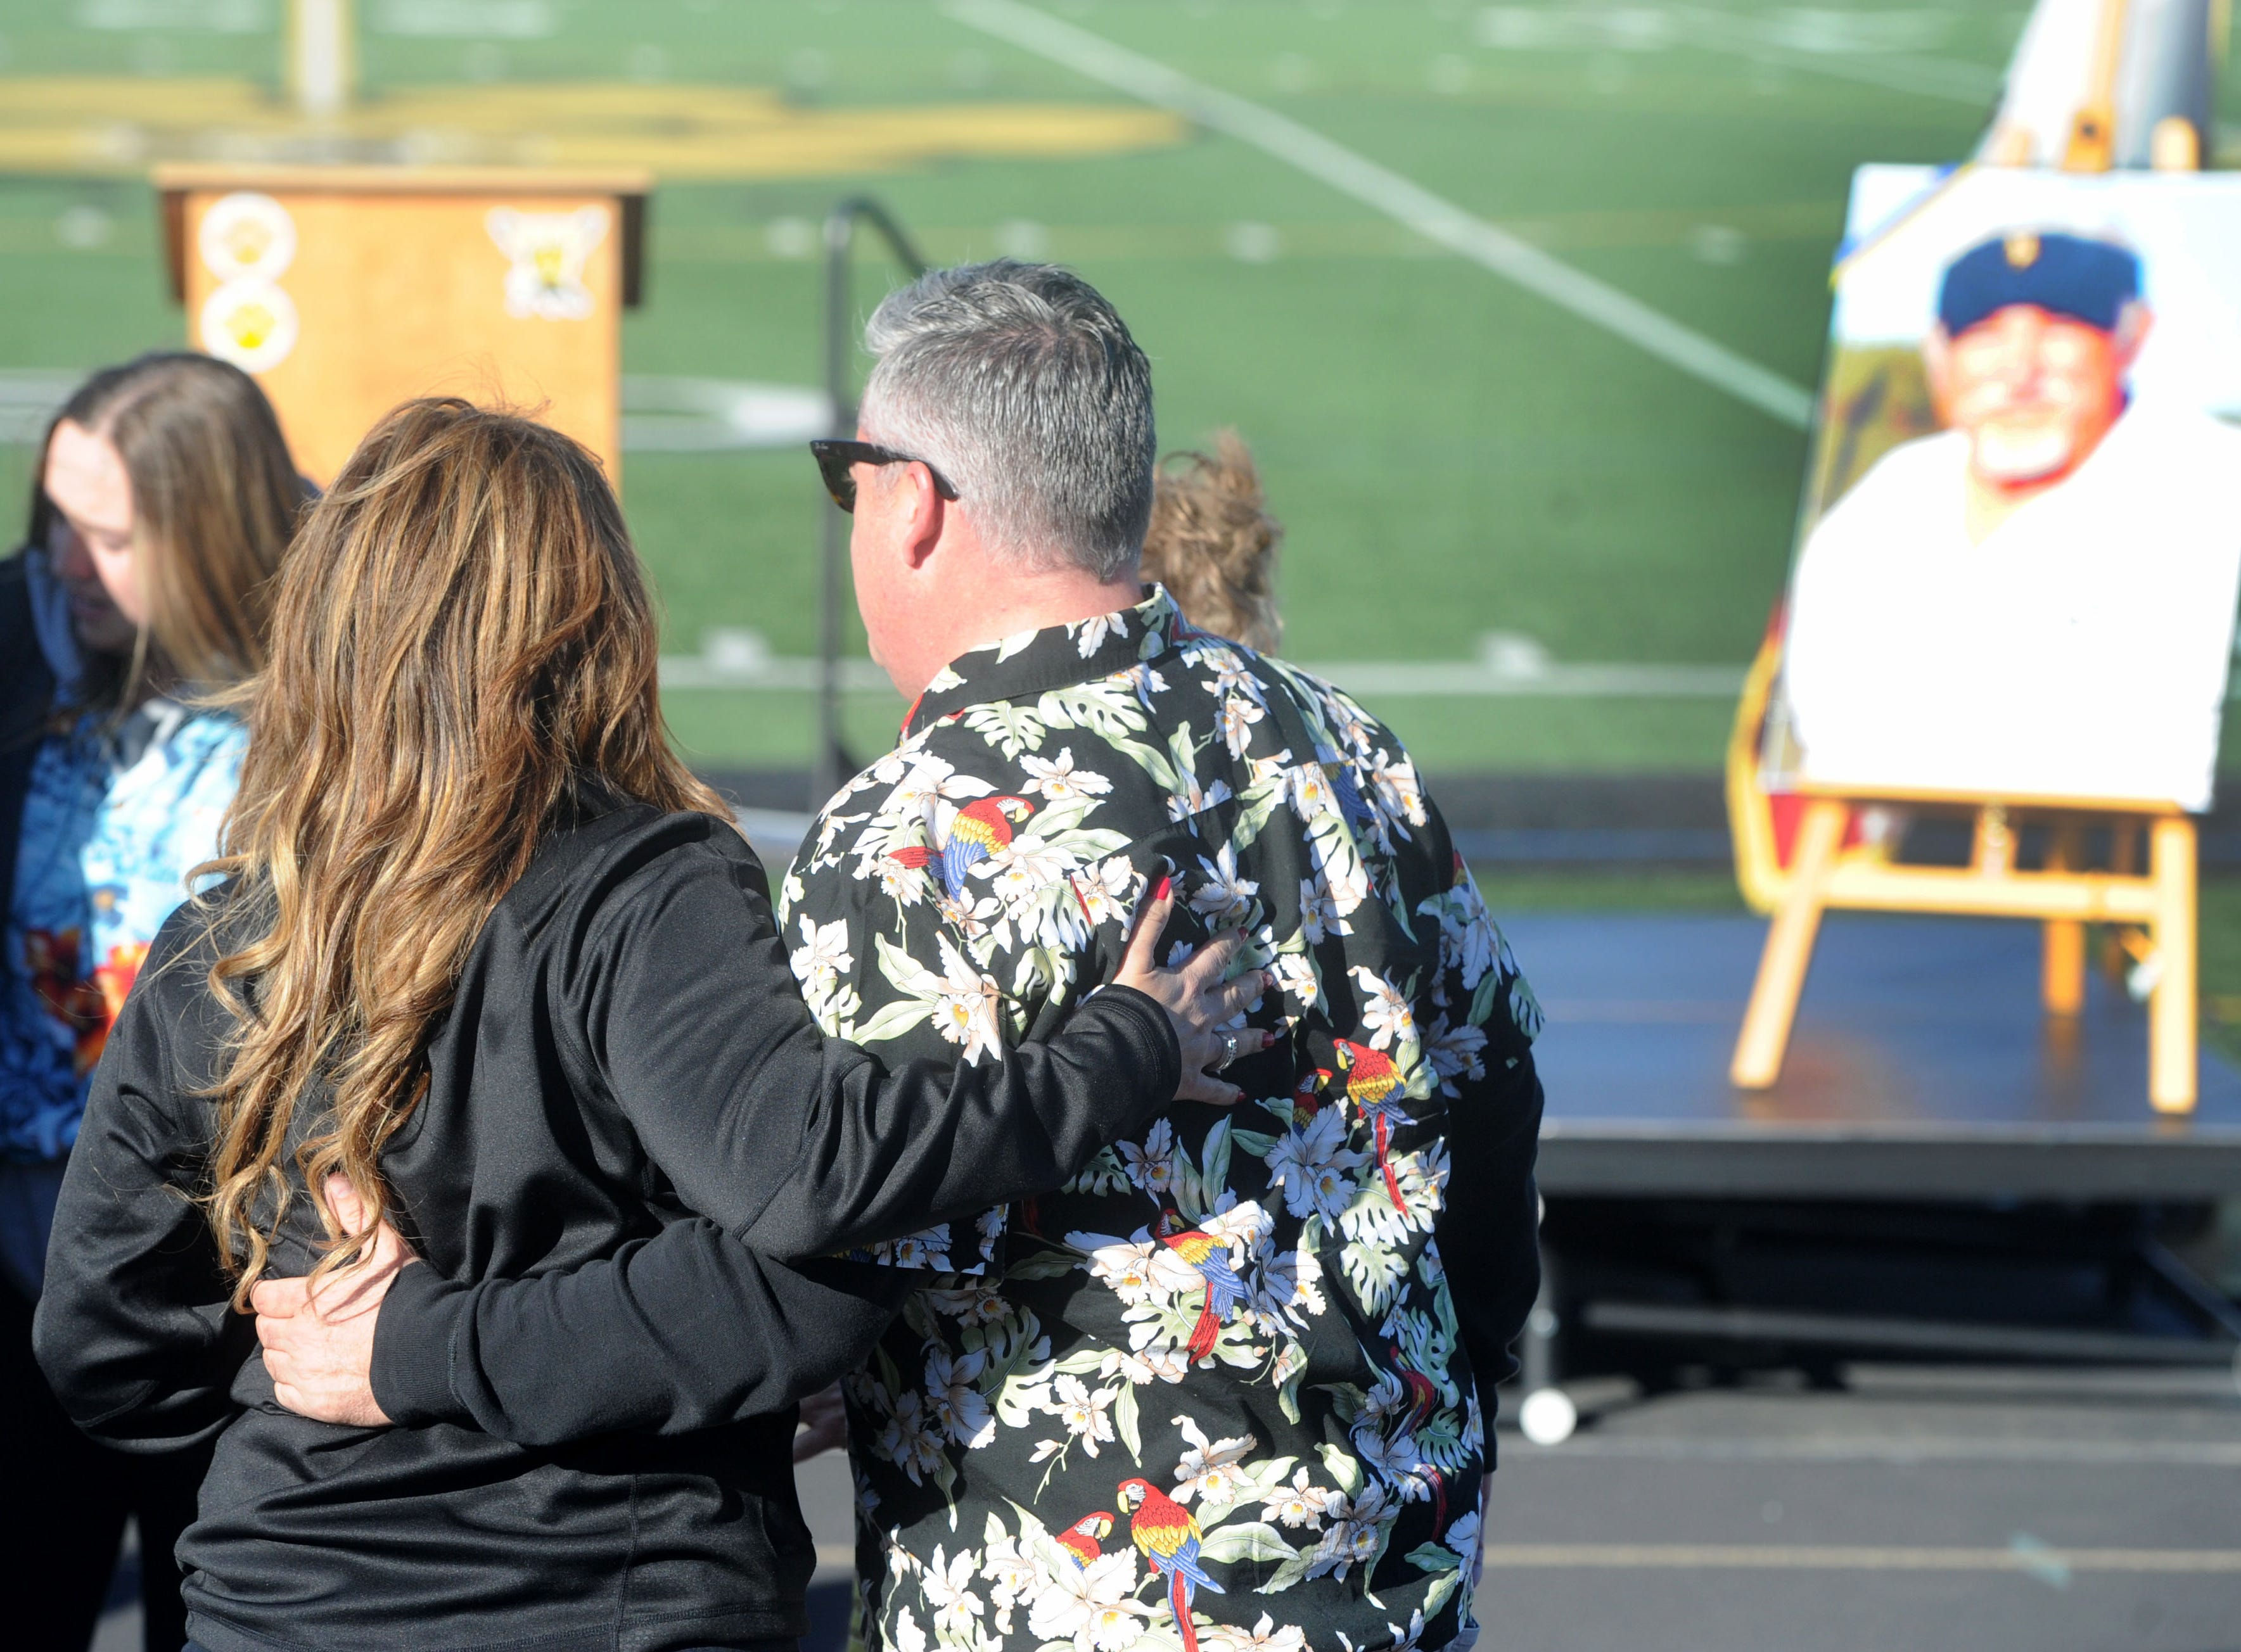 Well-wishers hug after the tribute to George Hurley at Newbury Park High on Saturday.